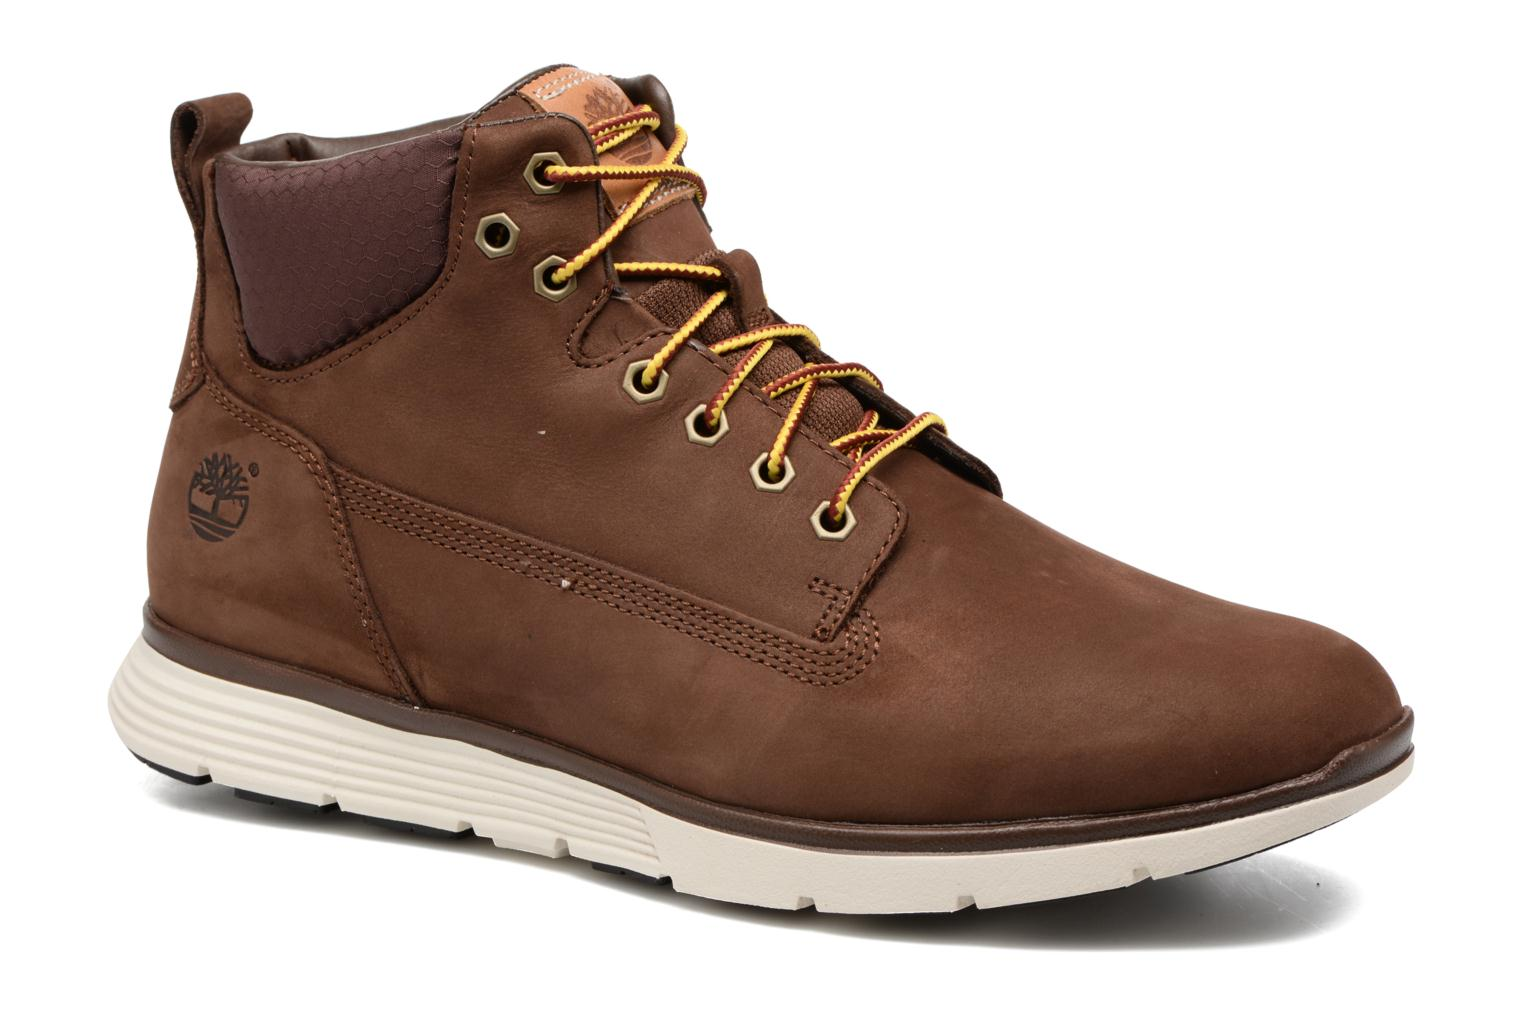 Bottines et boots Timberland Killington Chukka 2 Marron vue détail/paire